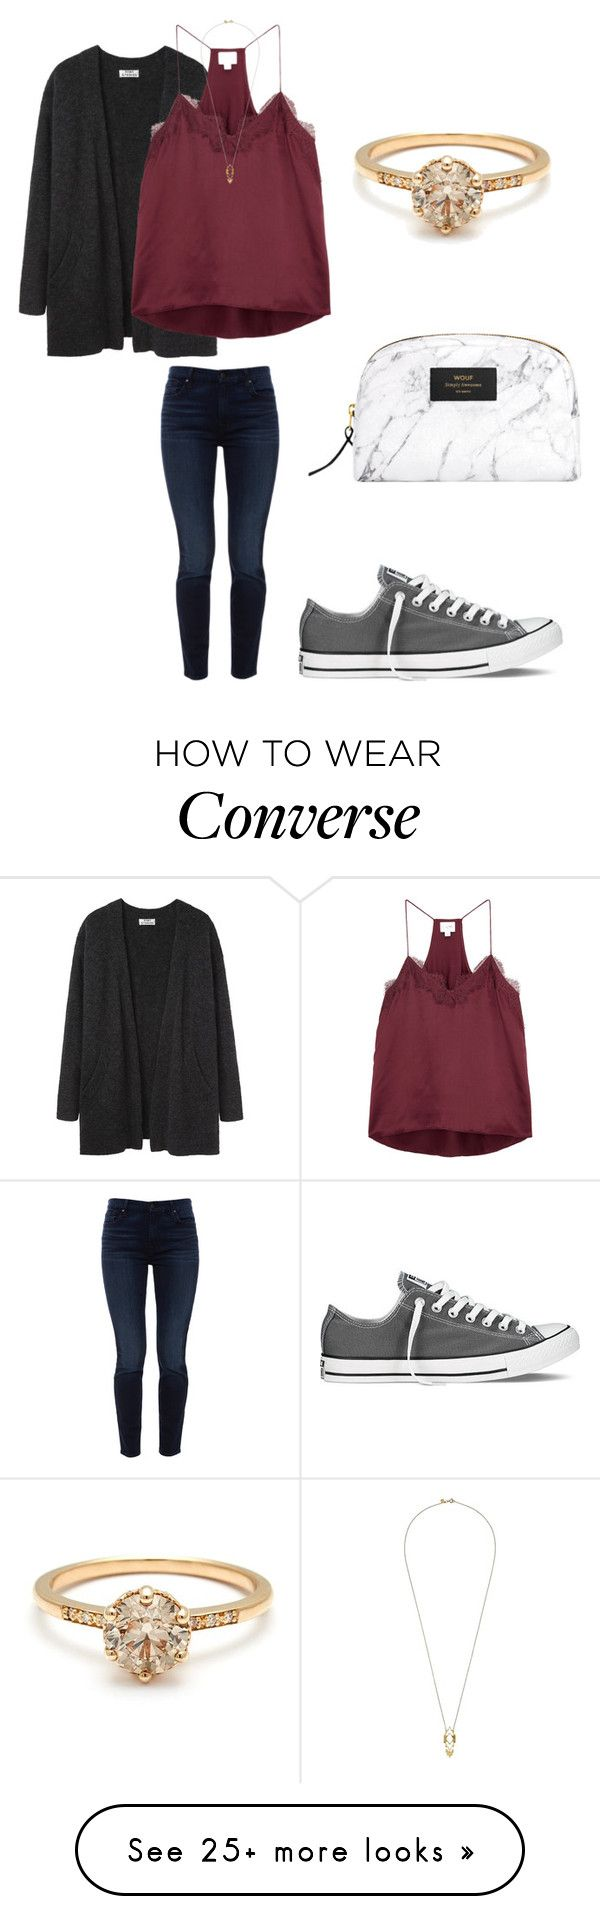 """My dad's birthday"" by sarahfohlen on Polyvore featuring Acne Studios, Jen7, Cami NYC, Converse, Gorjana, Winter and 2k18"